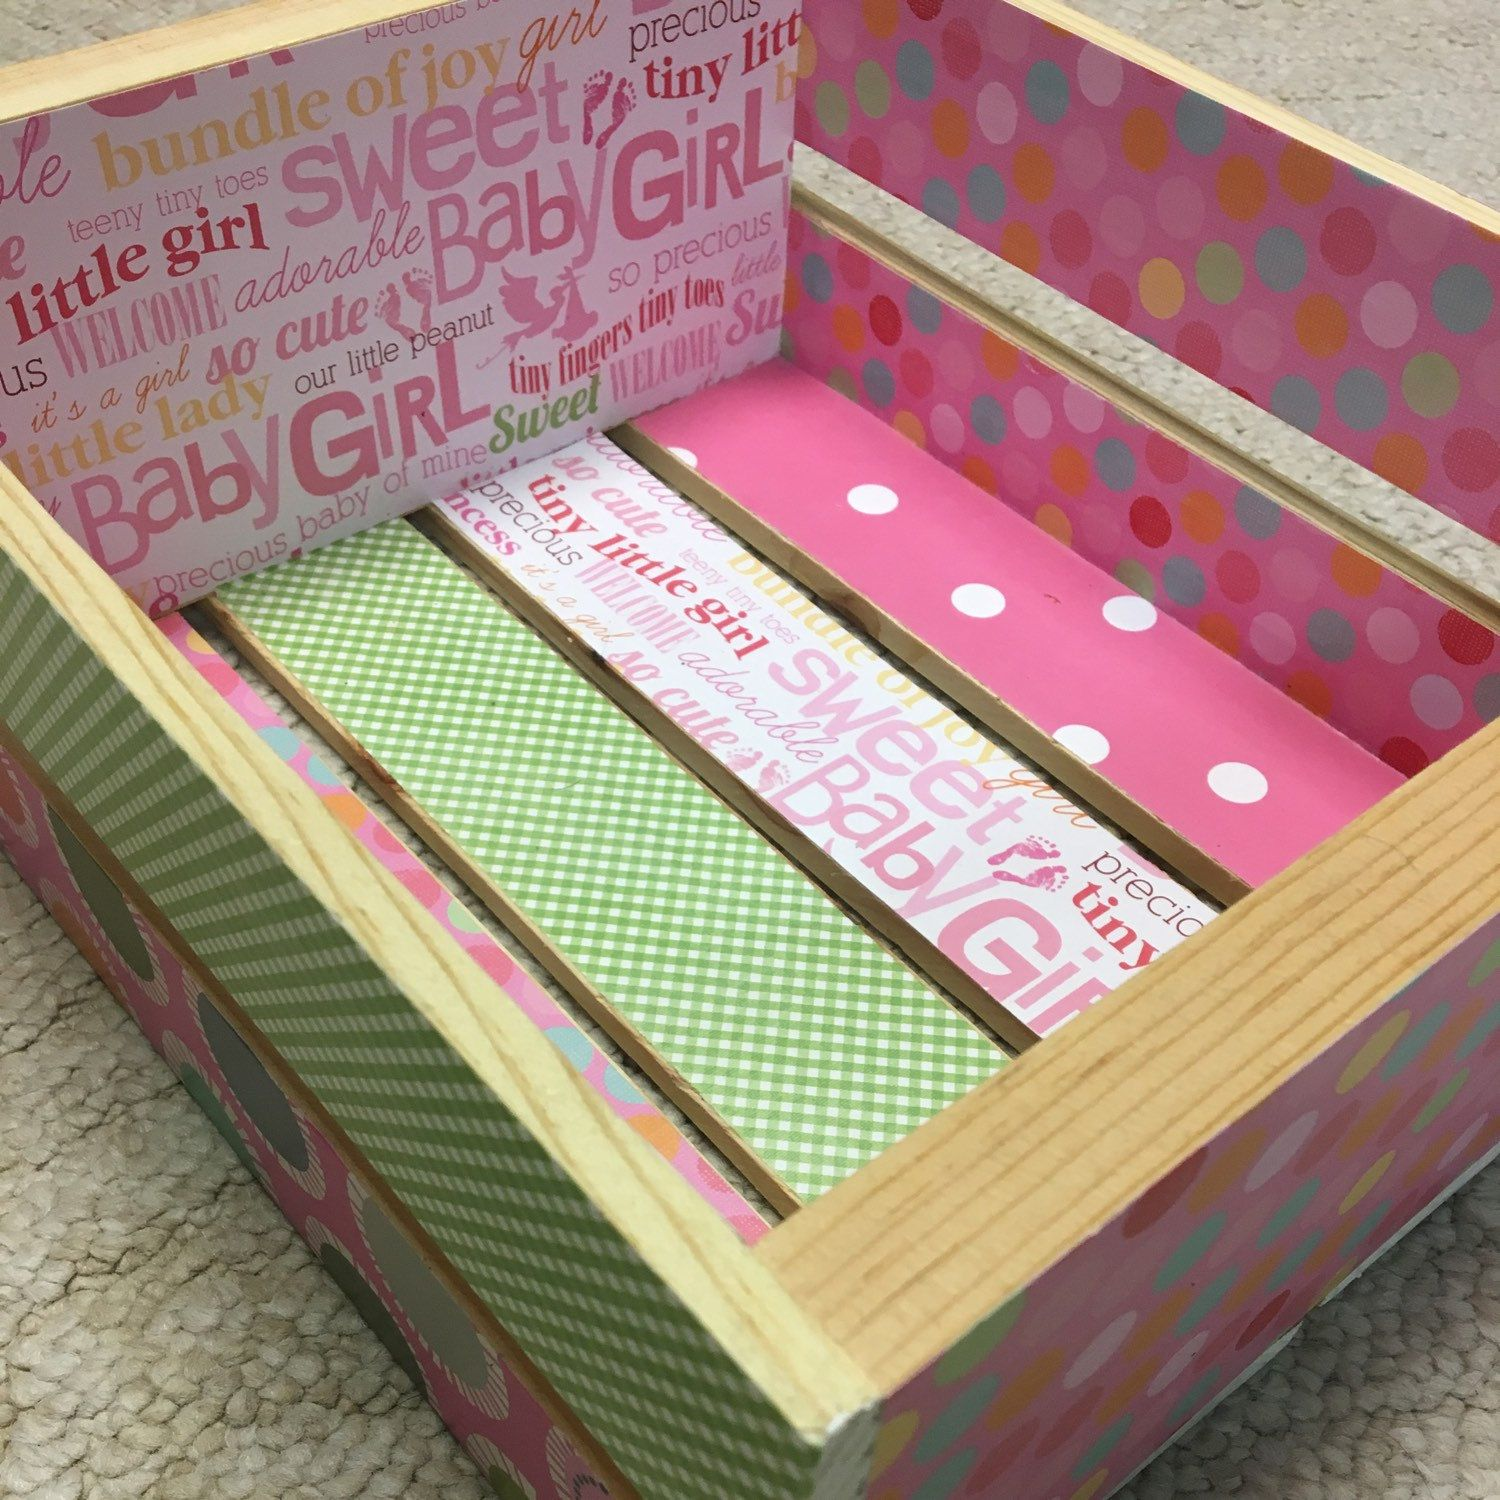 mymemoryboxes shared a new photo on great gift ideas pinterest